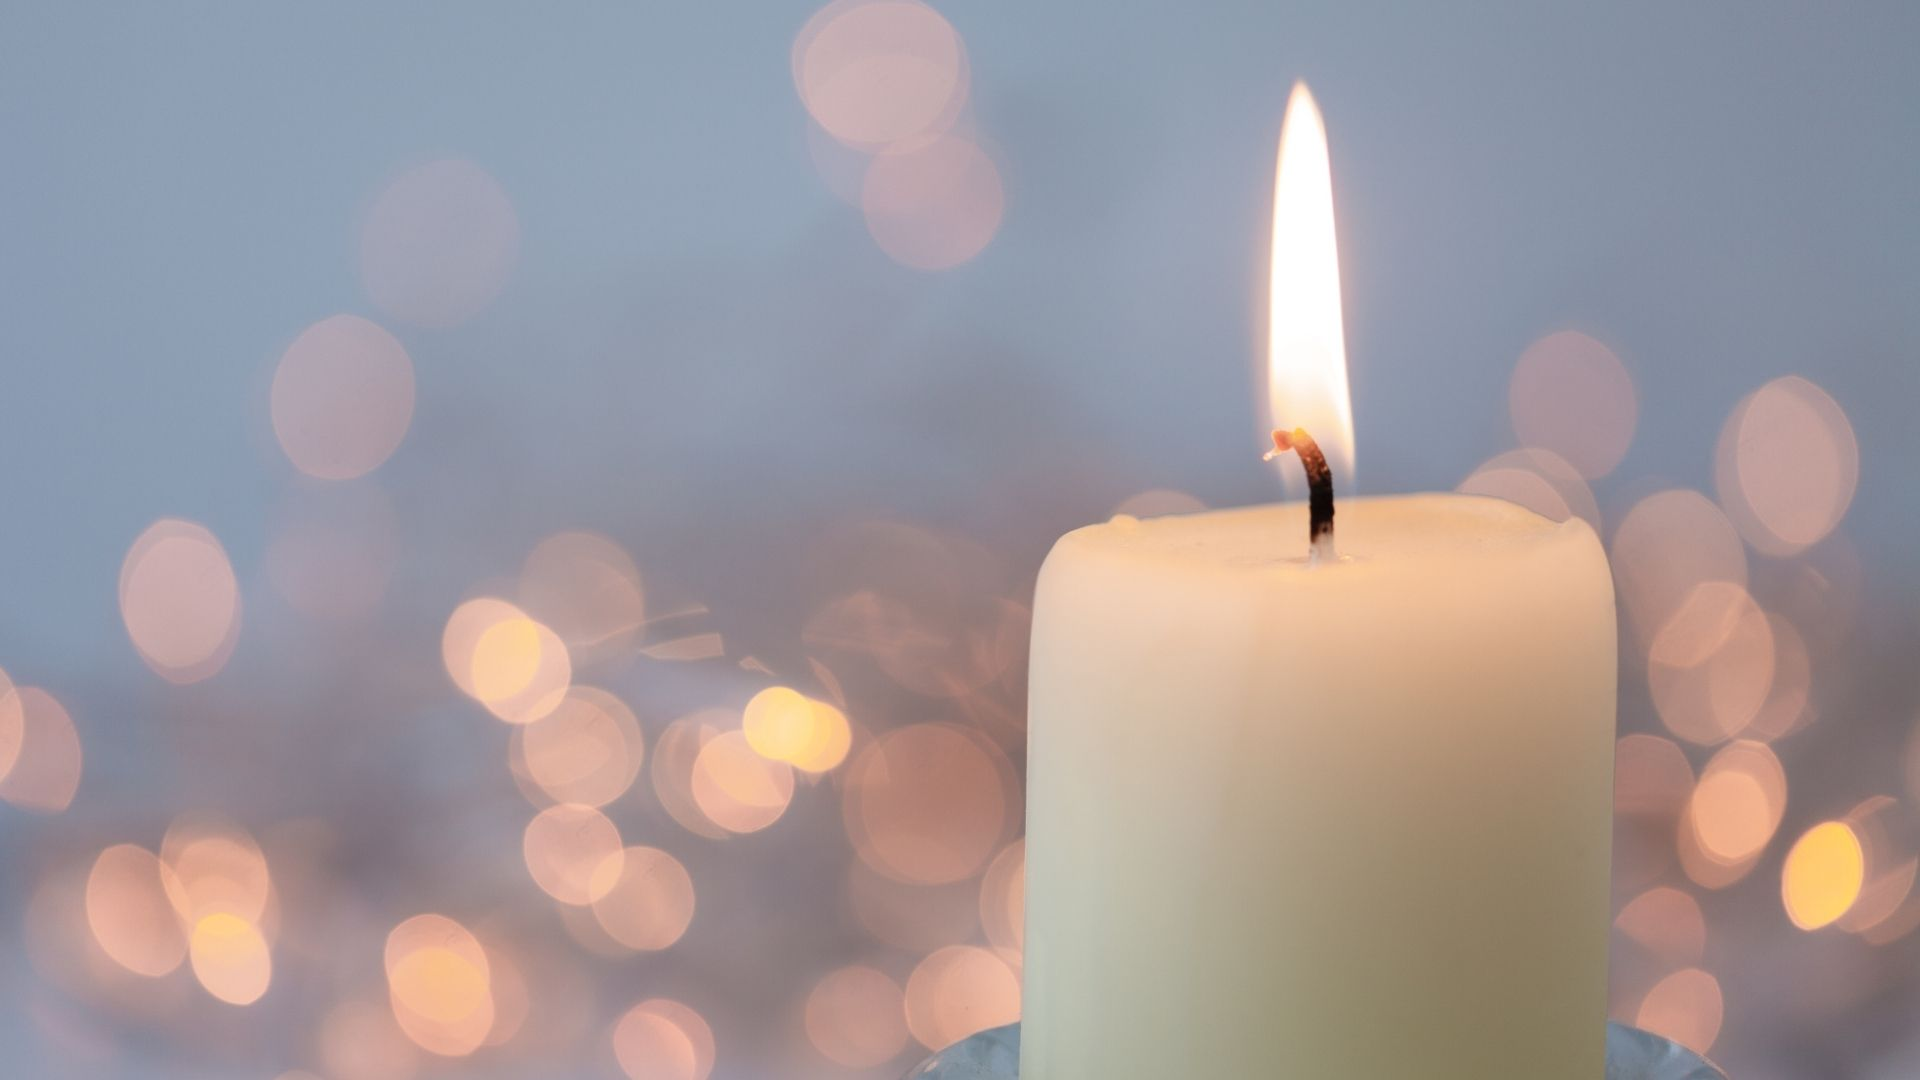 A white lit candle with blurred sparkling candles in the background